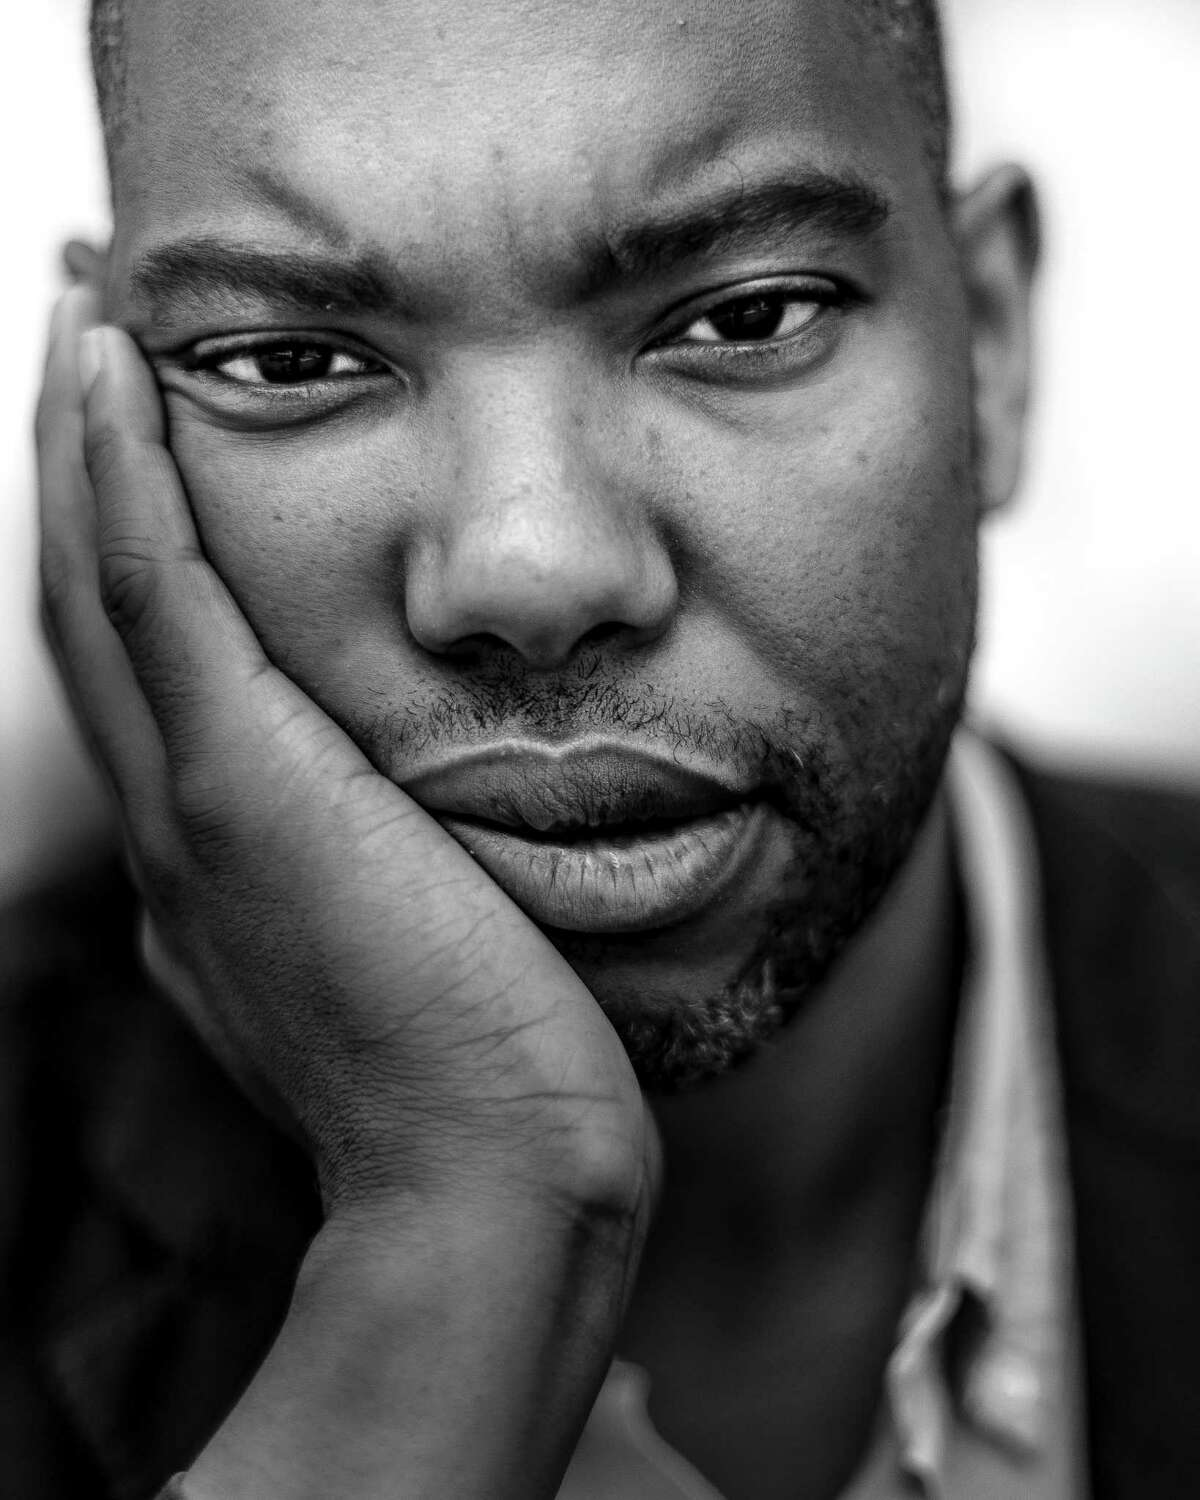 Superfan Ta-Nehisi Coates, a National Book Award winner and the national correspondent for The Atlantic, has a not-so-secret identity as a Marvel Comics superfan.